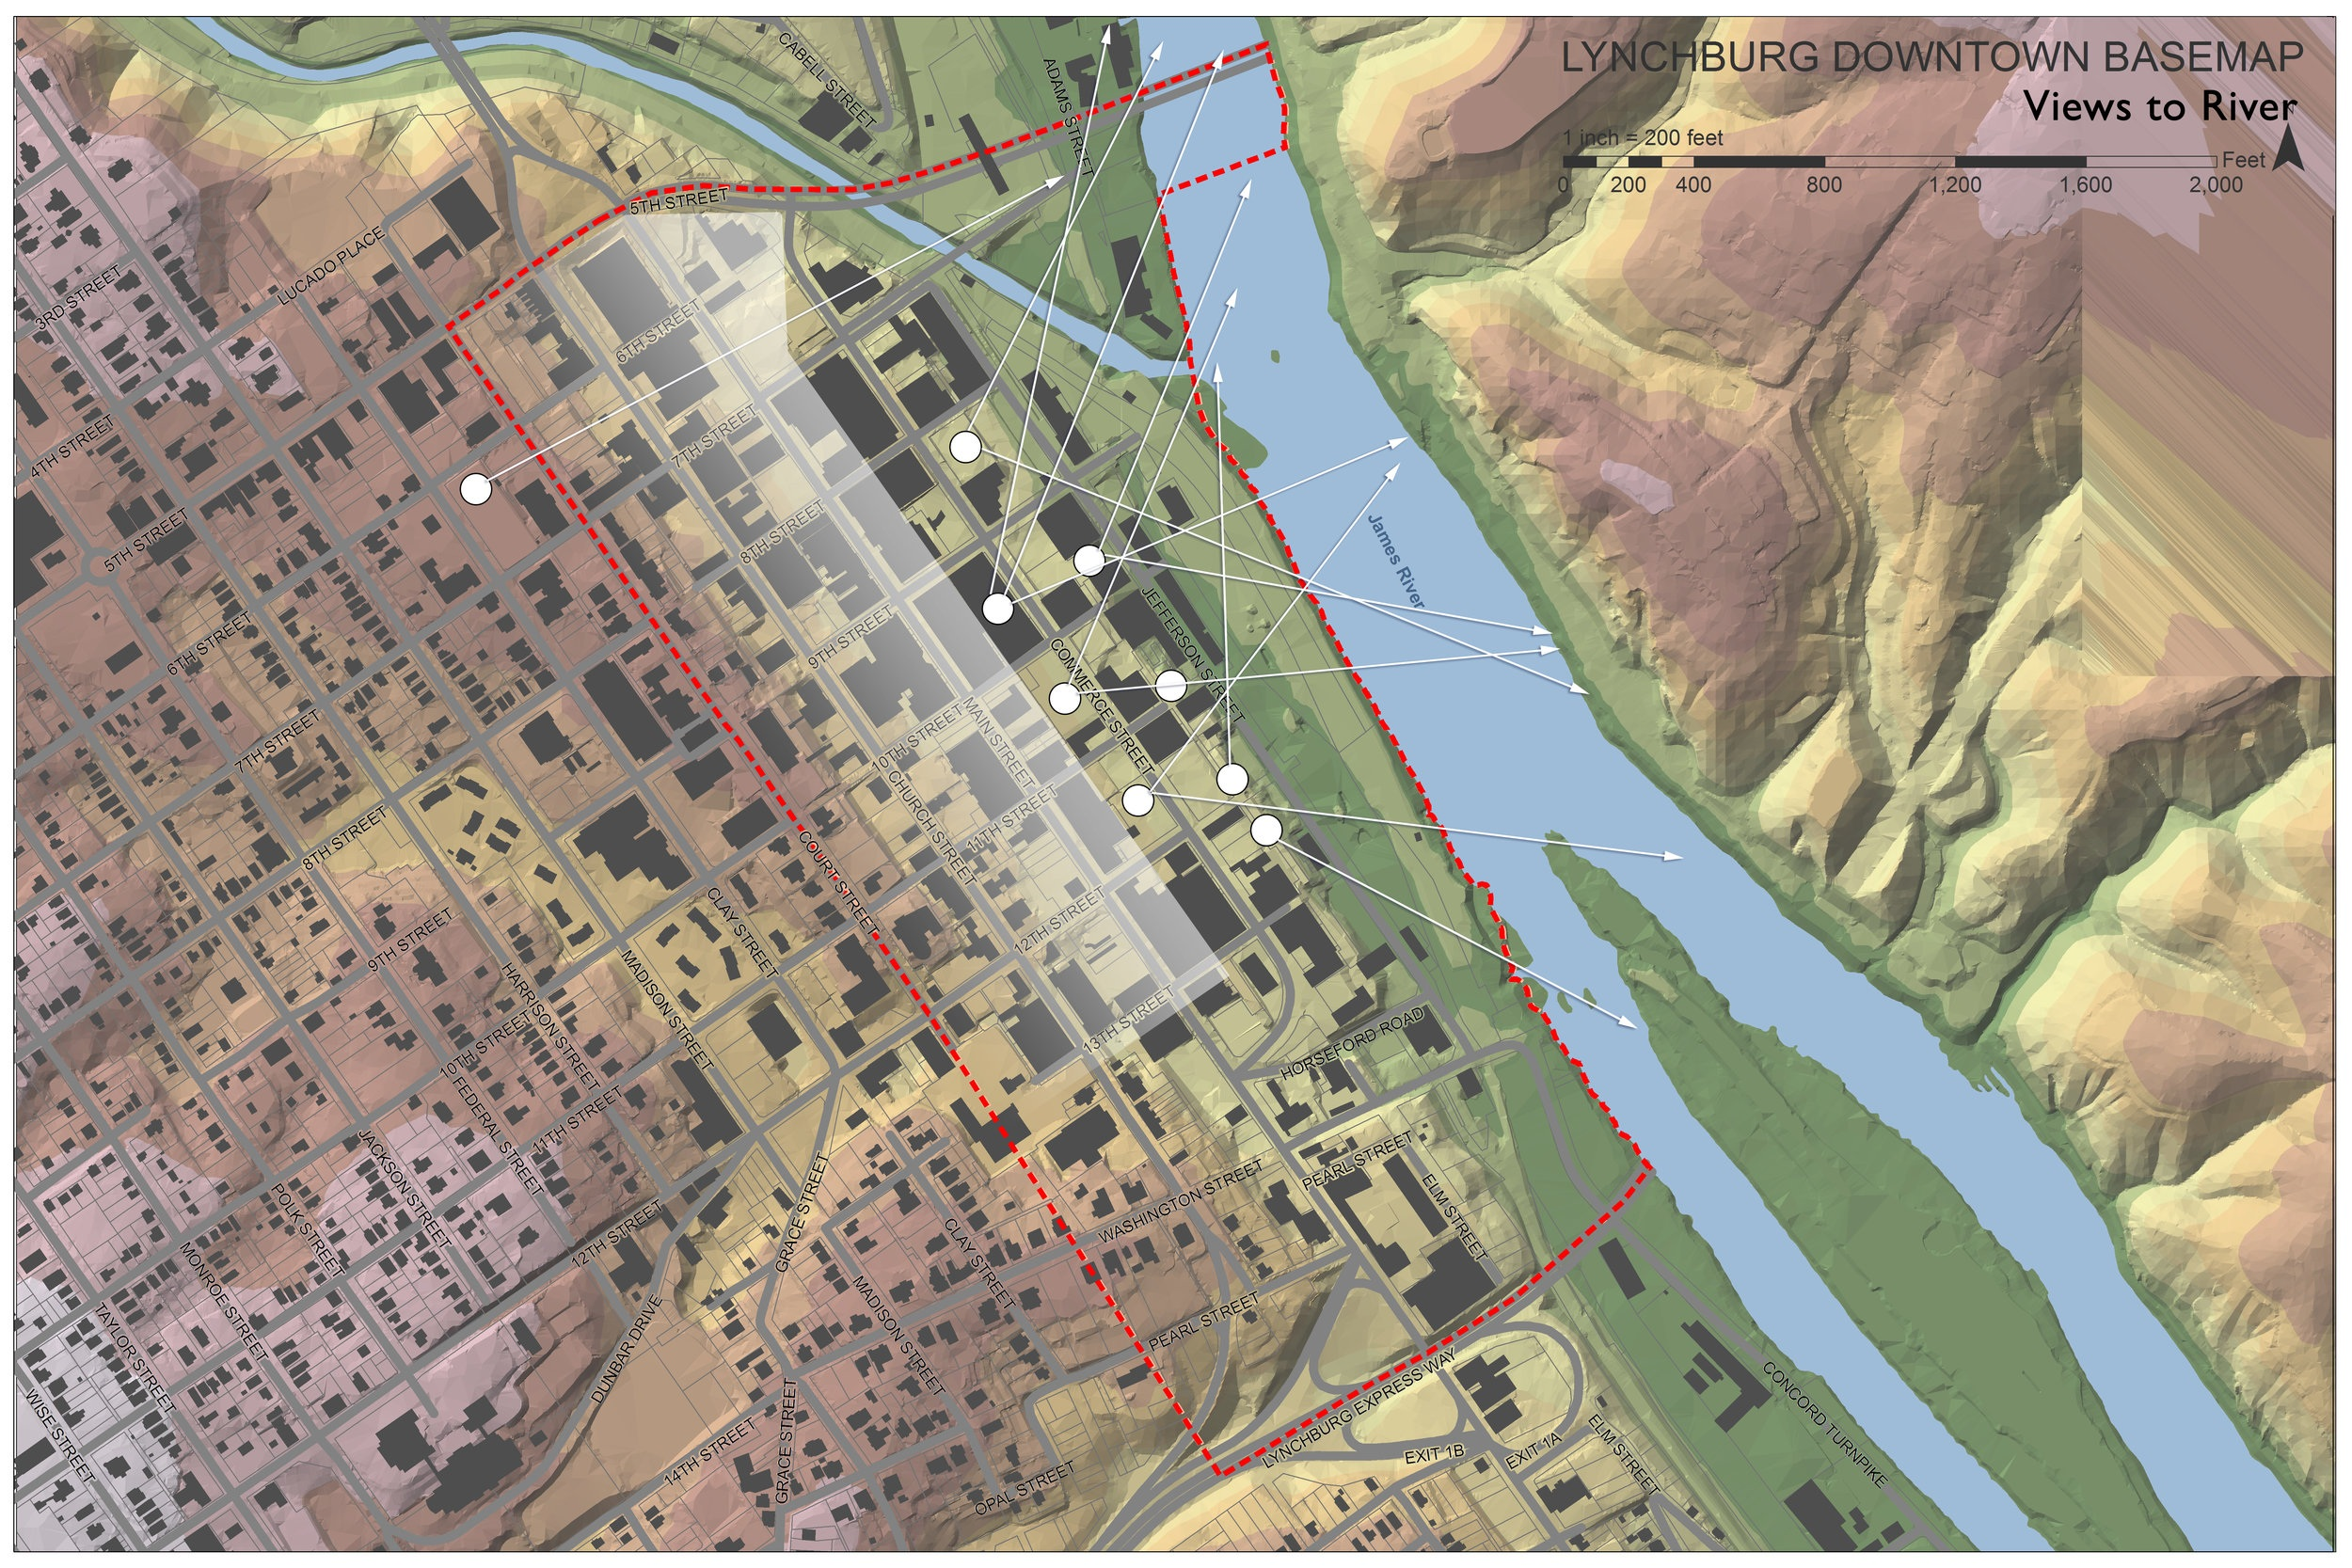 Lynchburg Downtown Plan - Urban Planning by Hill Studio